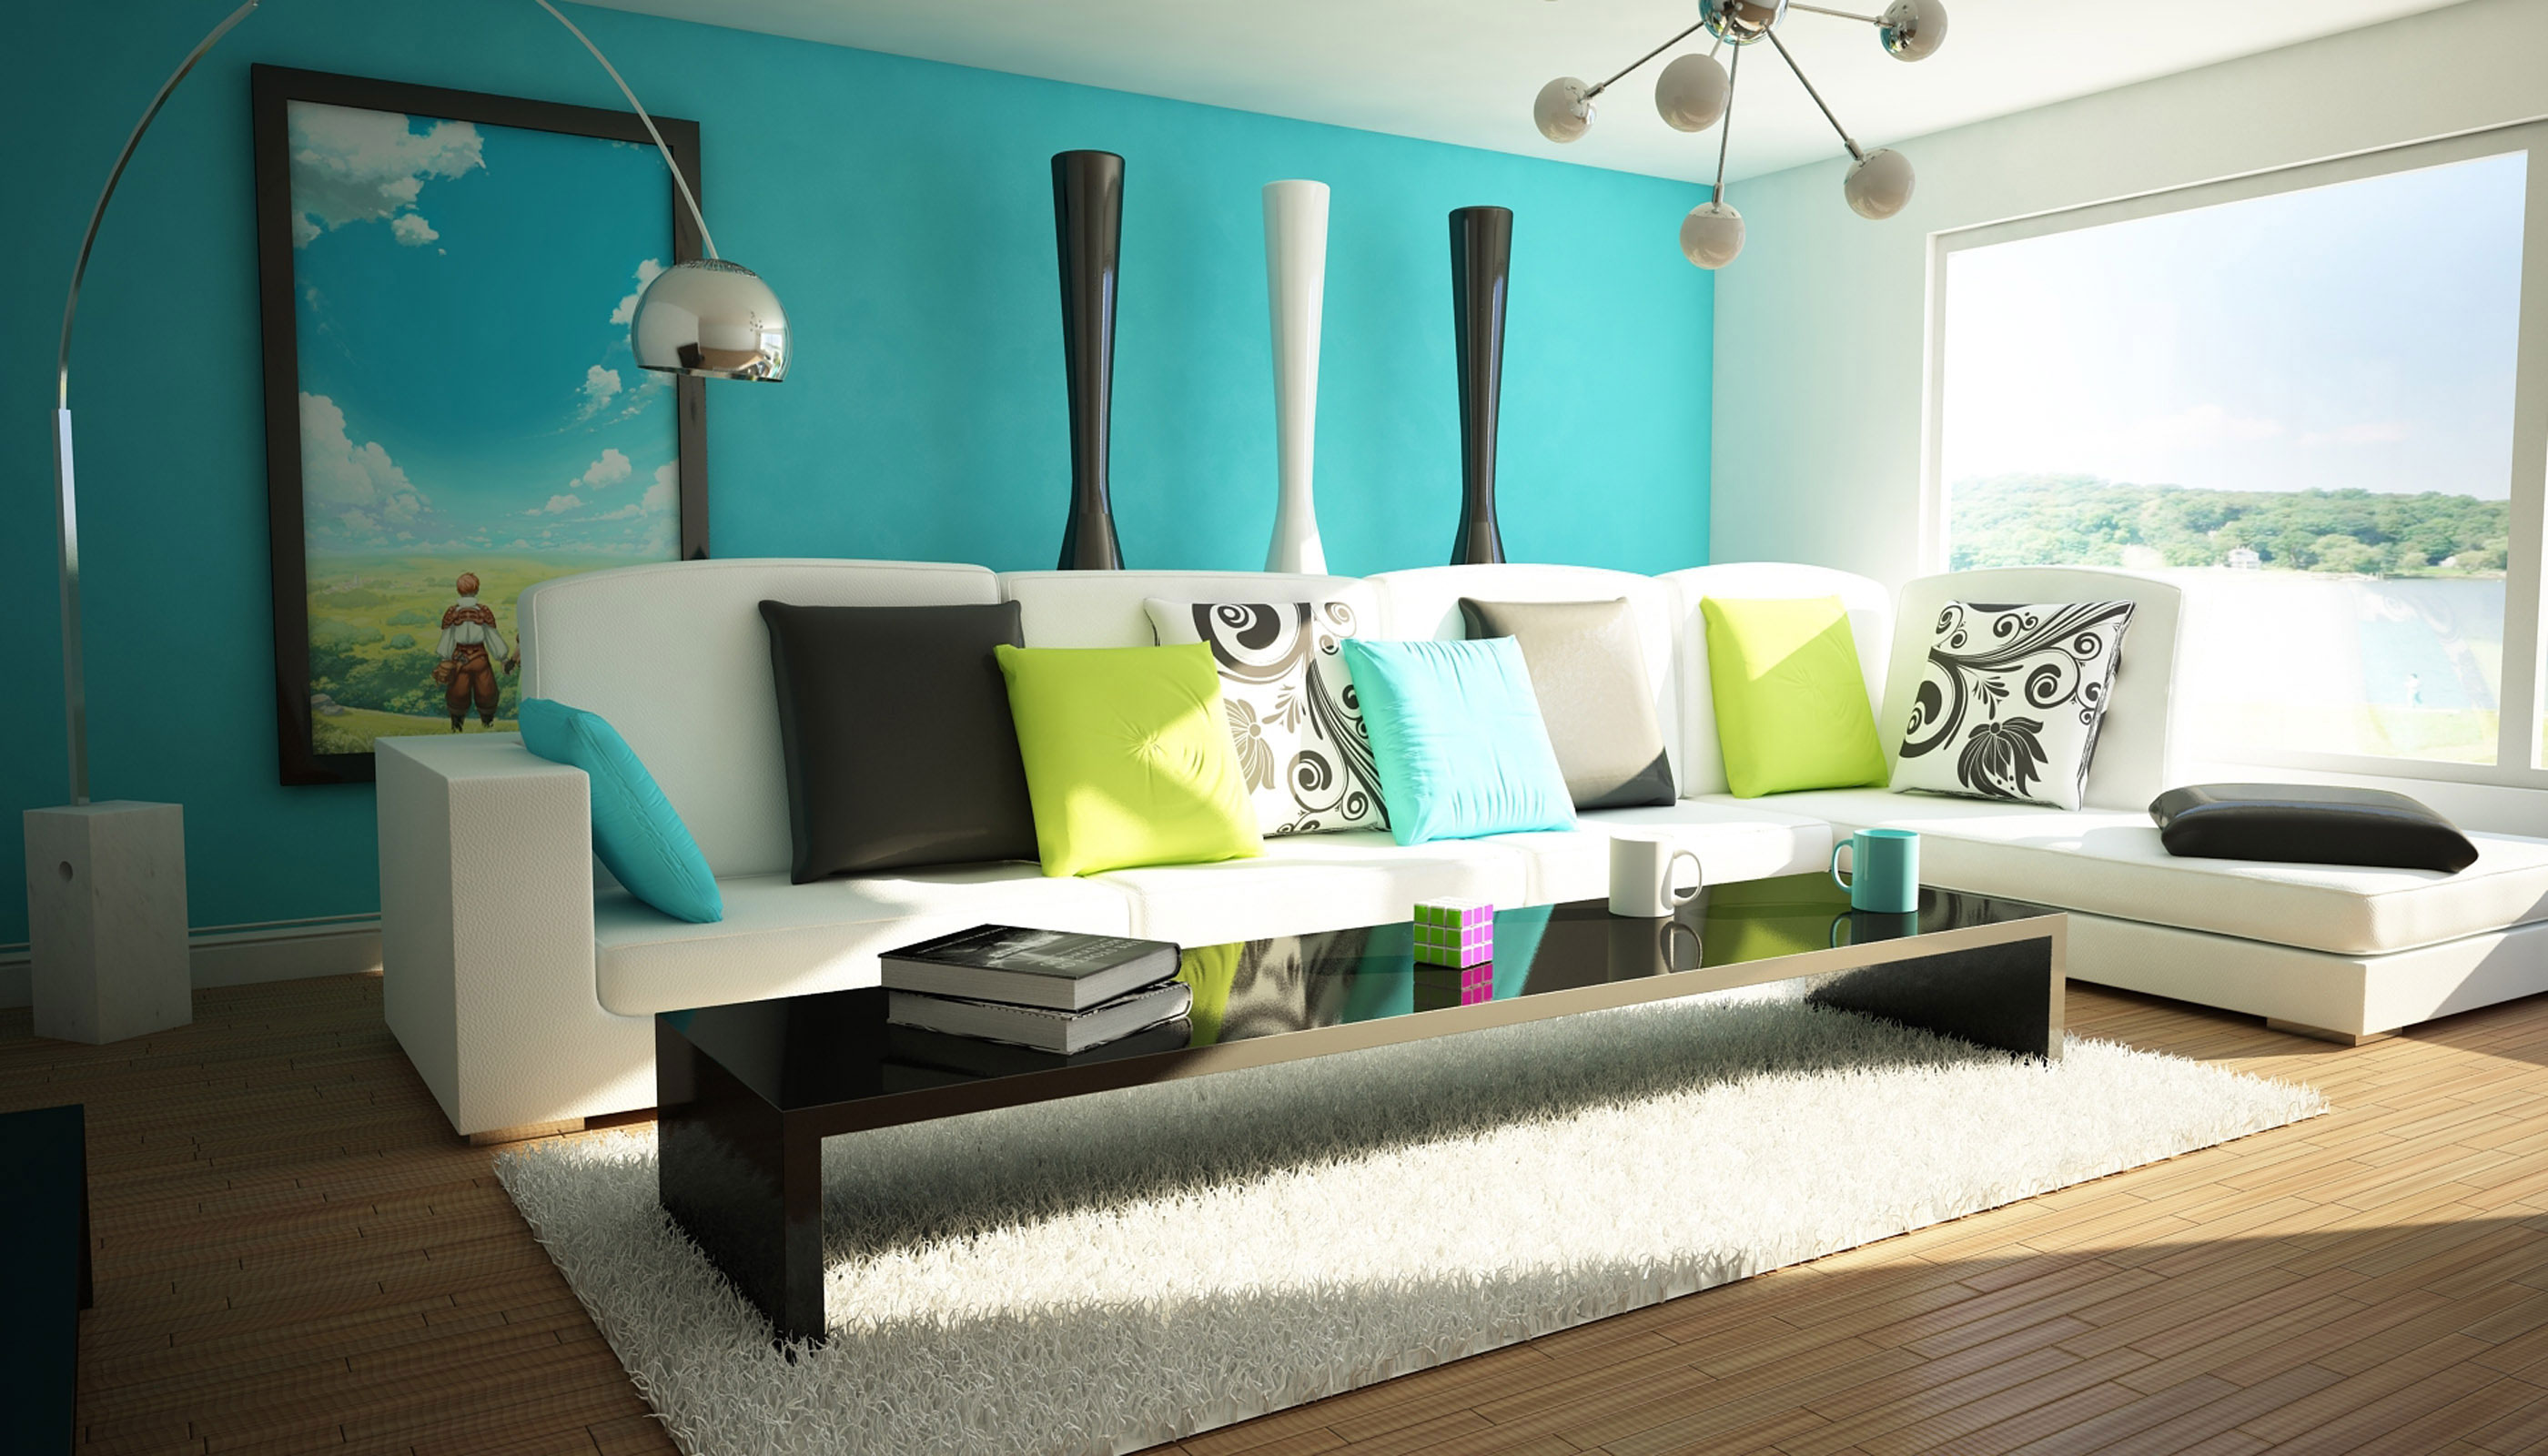 Home Interior Bright And Cozy Living Room Hd Wallpapers In Hd Shawn Chesney Home Inspections